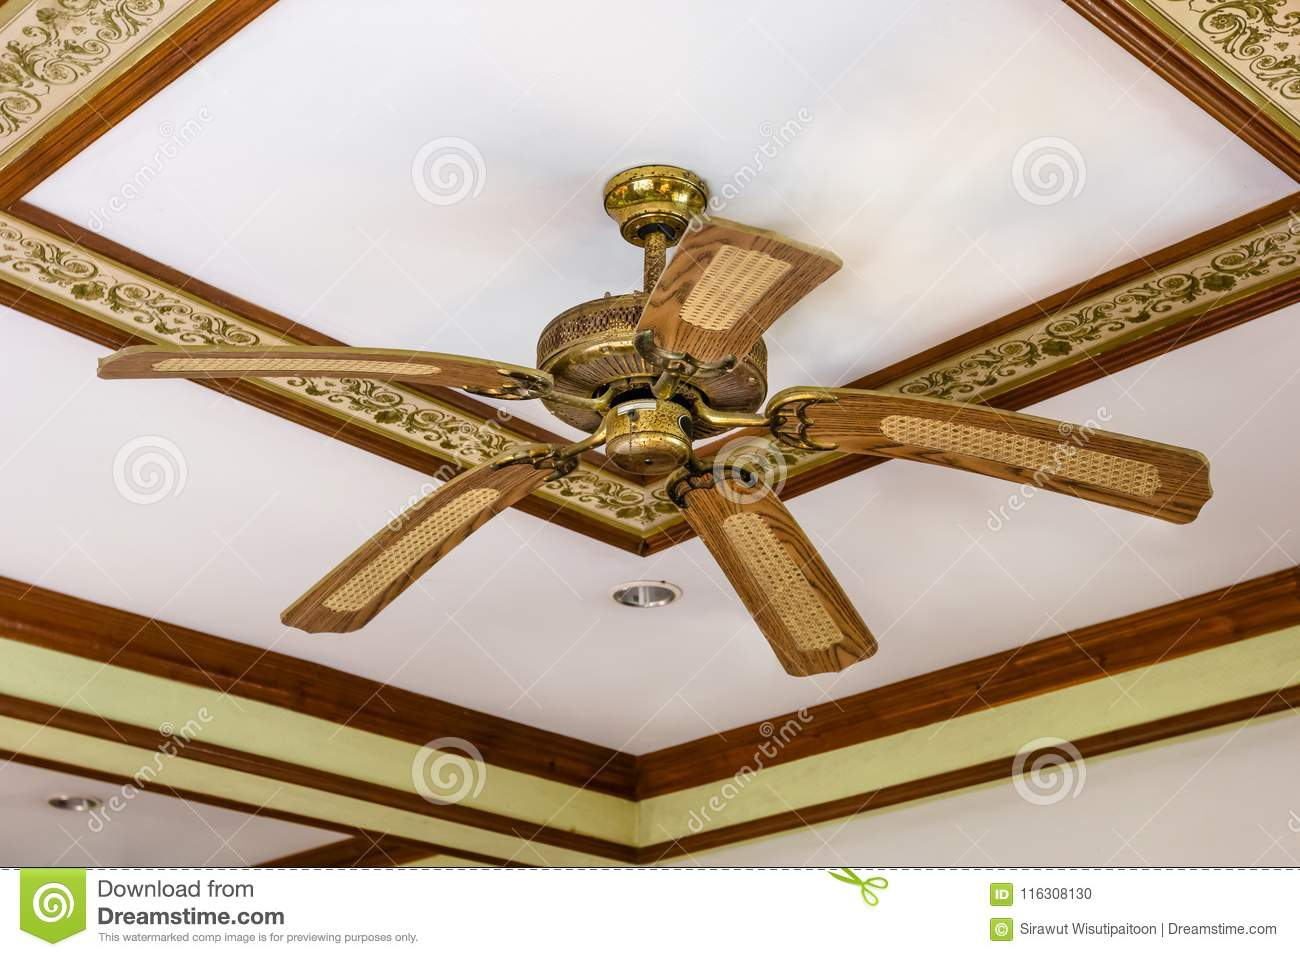 Vintage Wooden Fan Ceiling Ancient Stock Photo Image Of Interior Retro 116308130